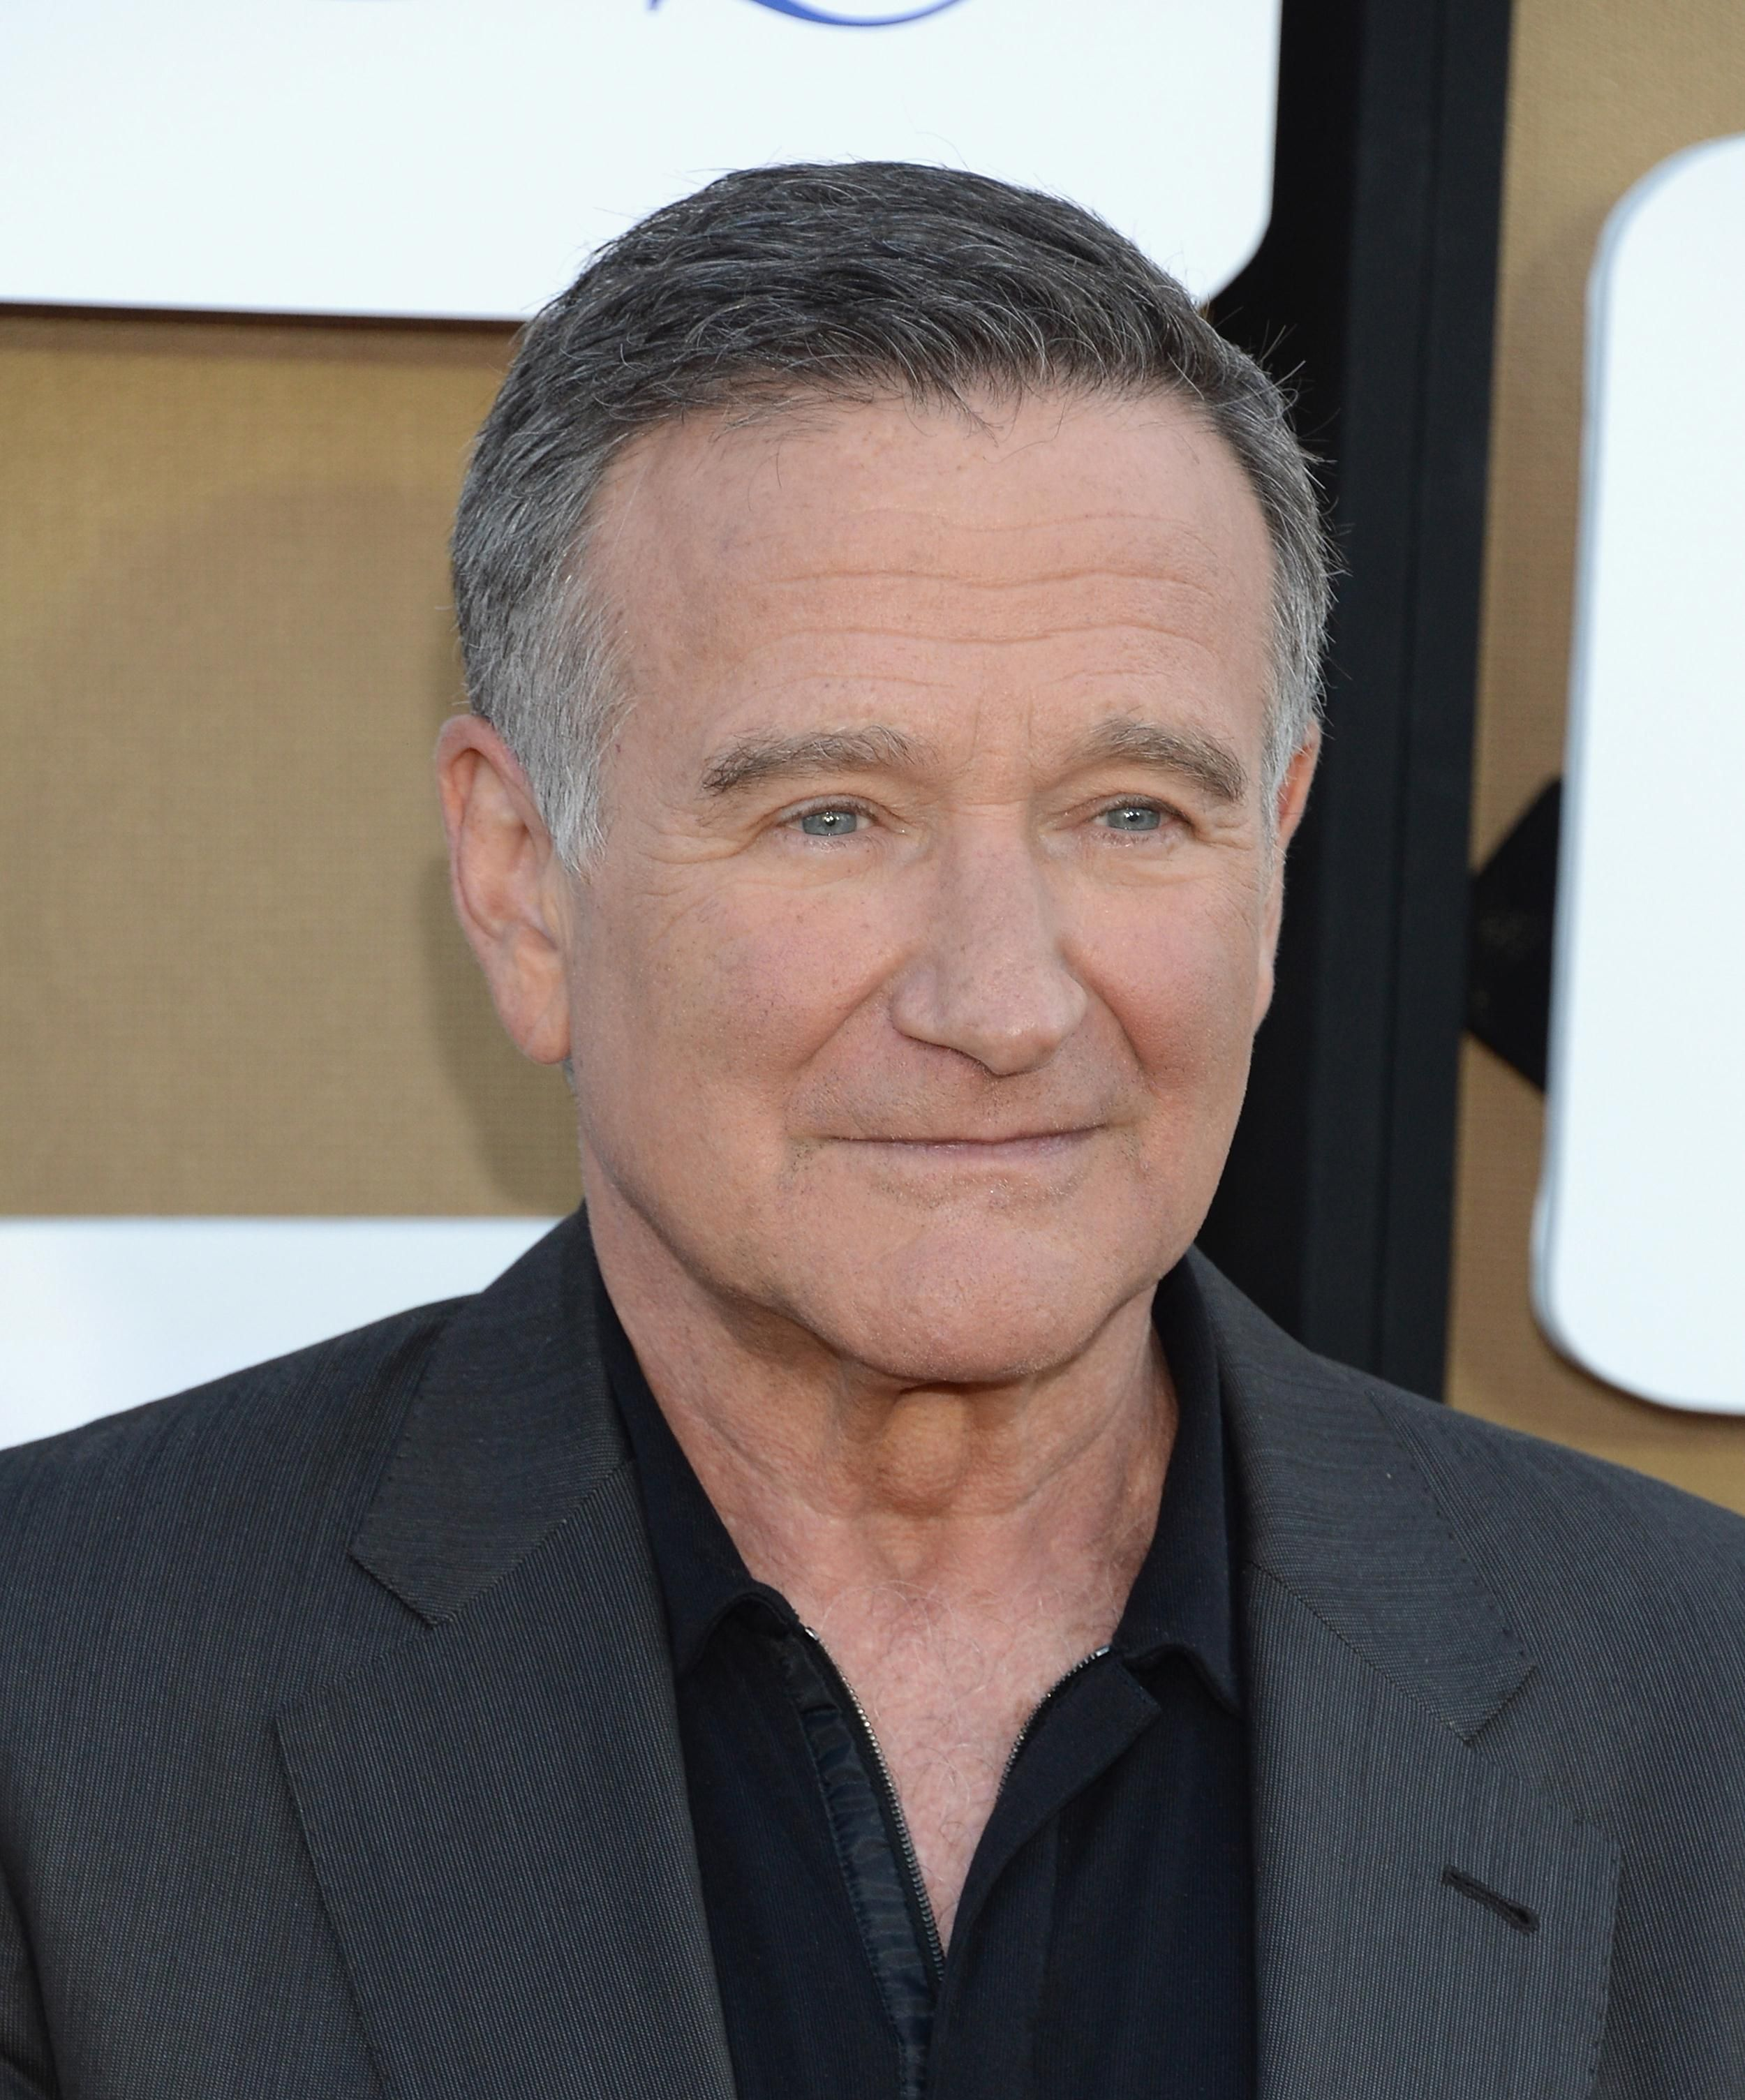 Robin Williams Was Struggling With Early Parkinson's, Wife Says